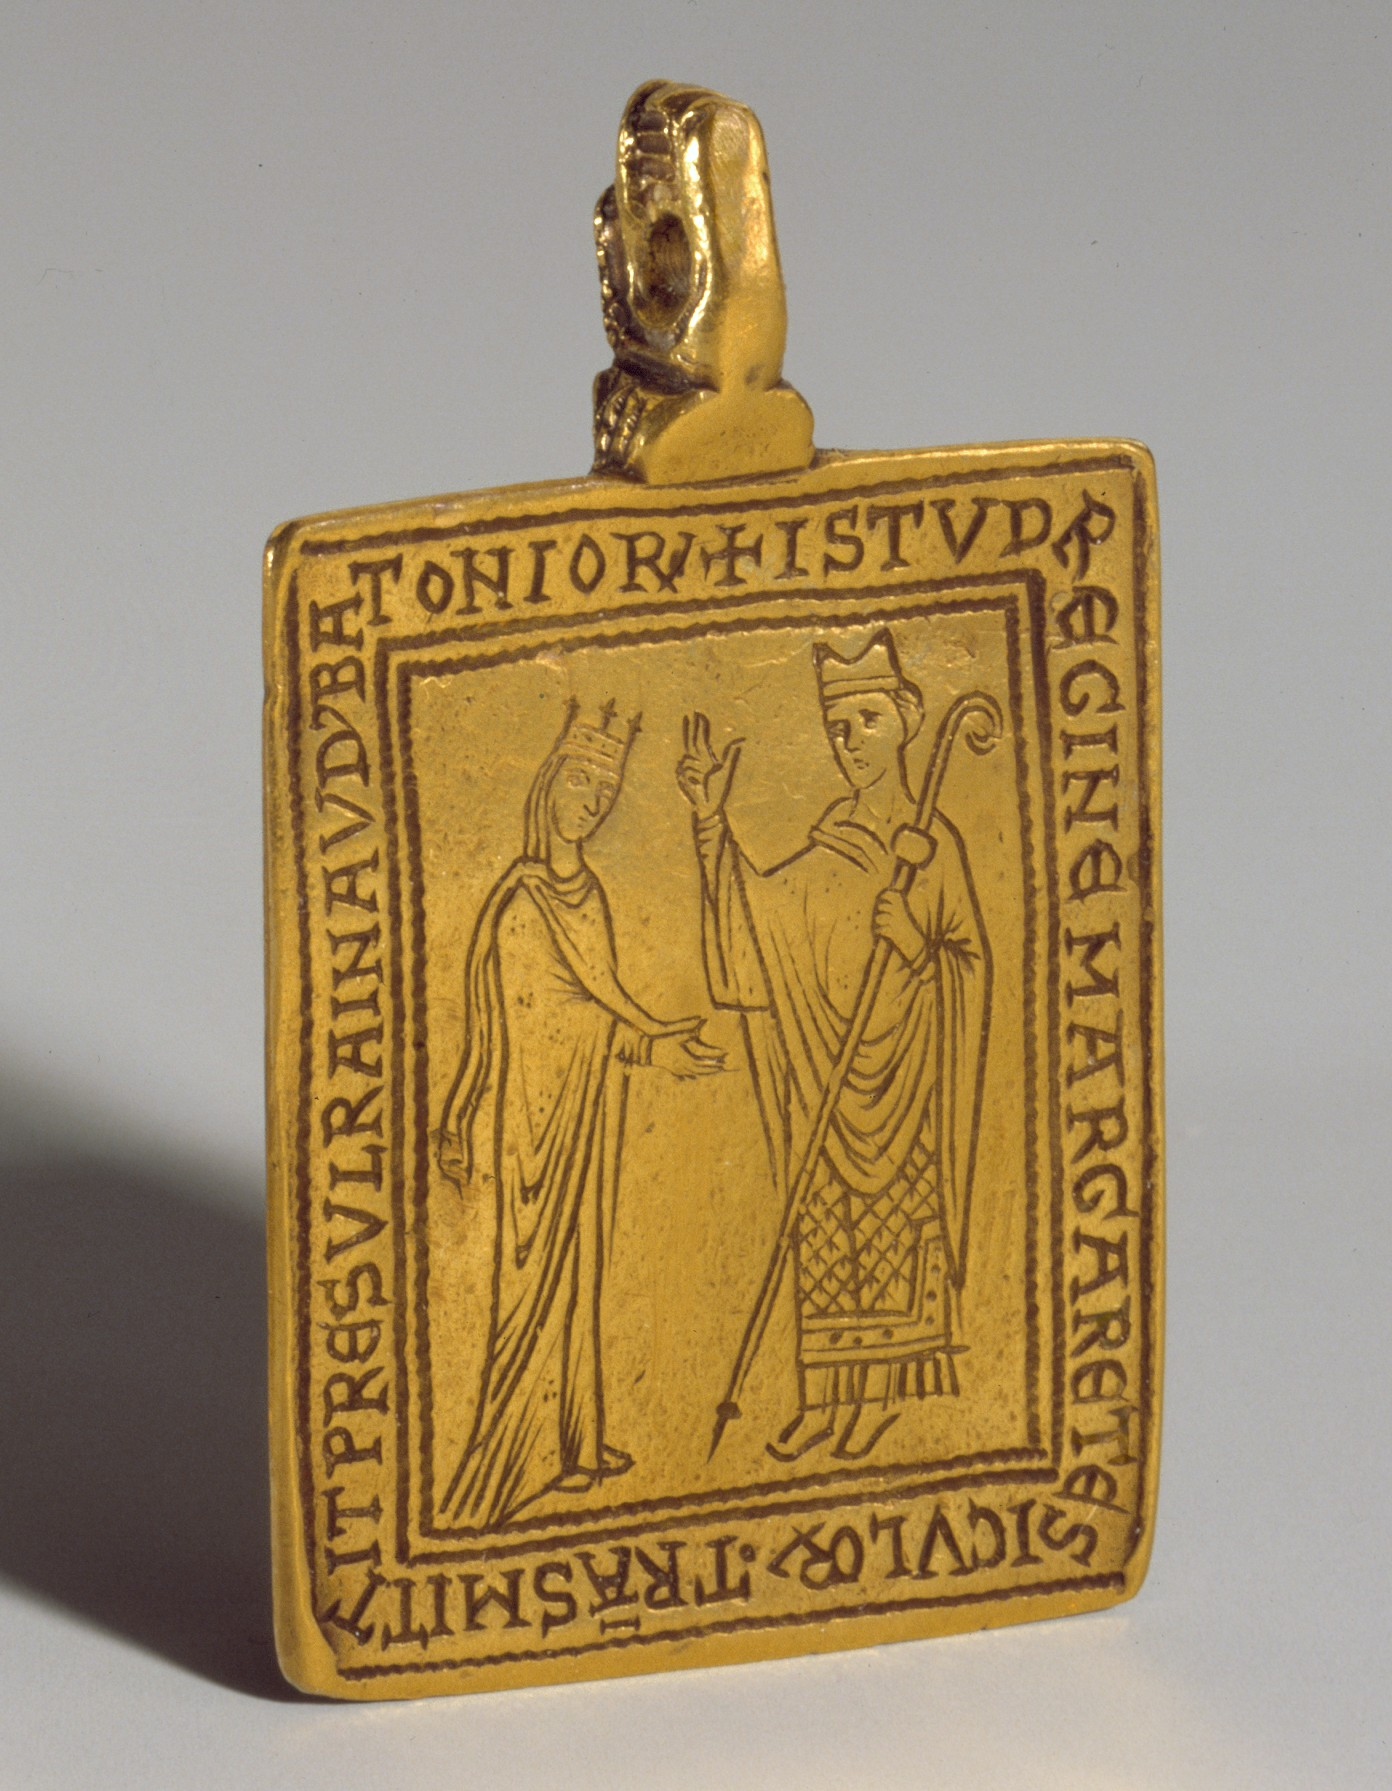 pilgrim s badge of the shrine of st thomas becket at canterbury reliquary pendant queen margaret of sicily blessed by bishop reginald of bath